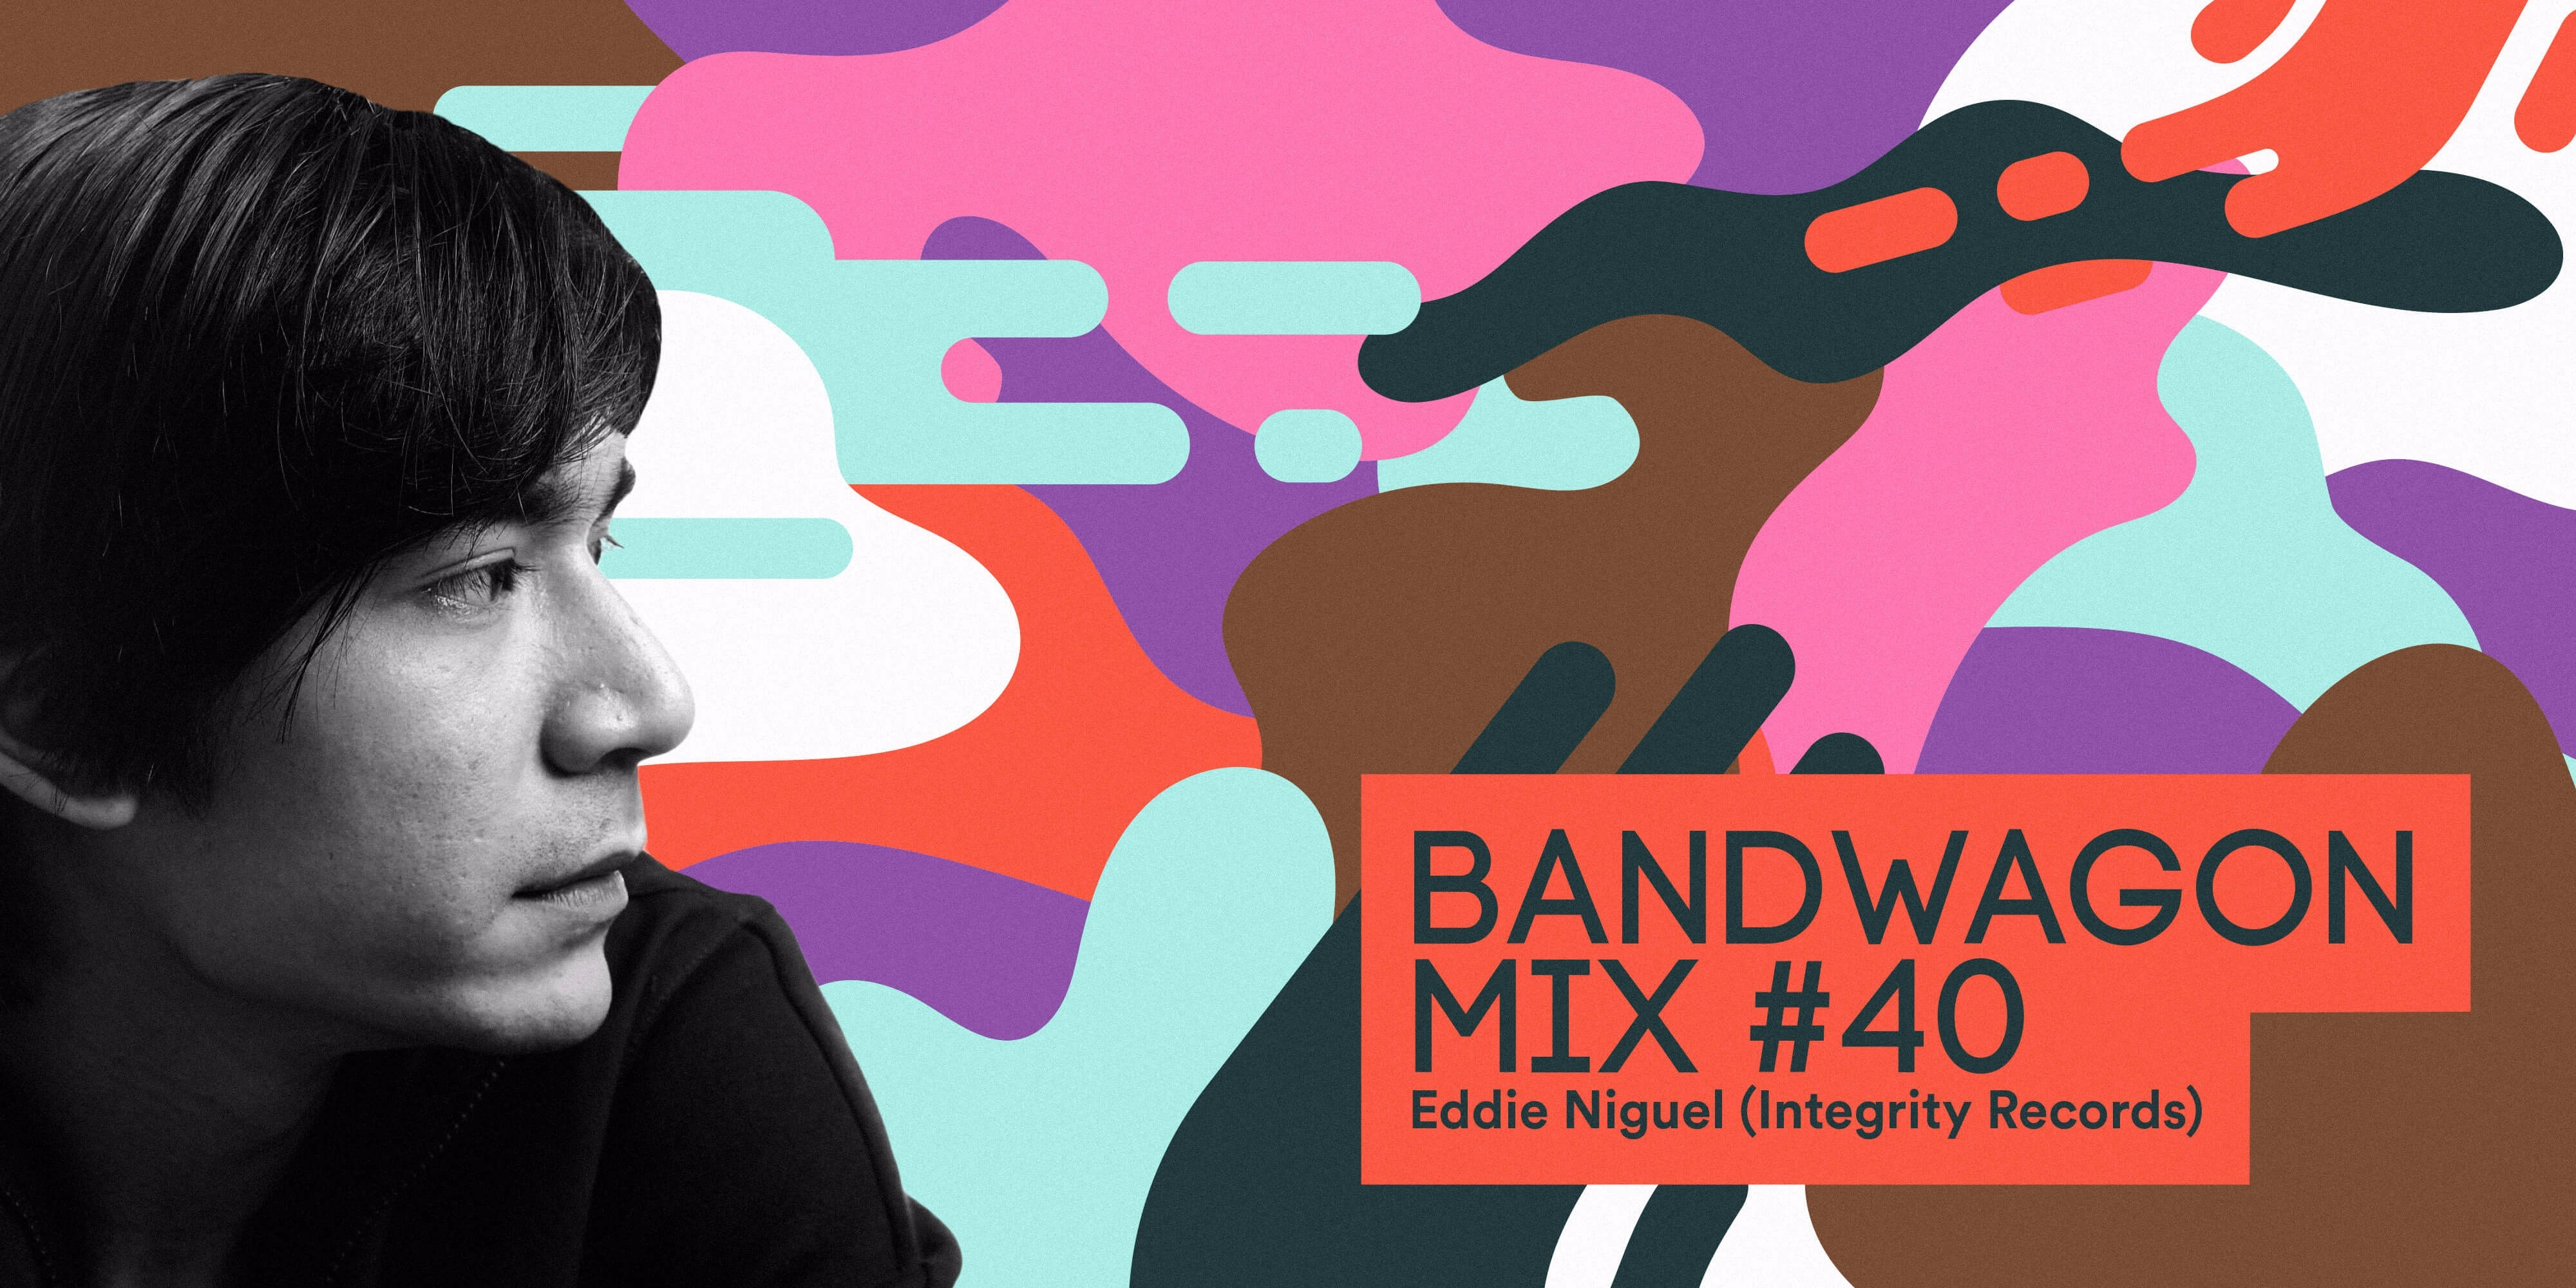 Bandwagon Mix #40: Eddie Niguel (Integrity Records)